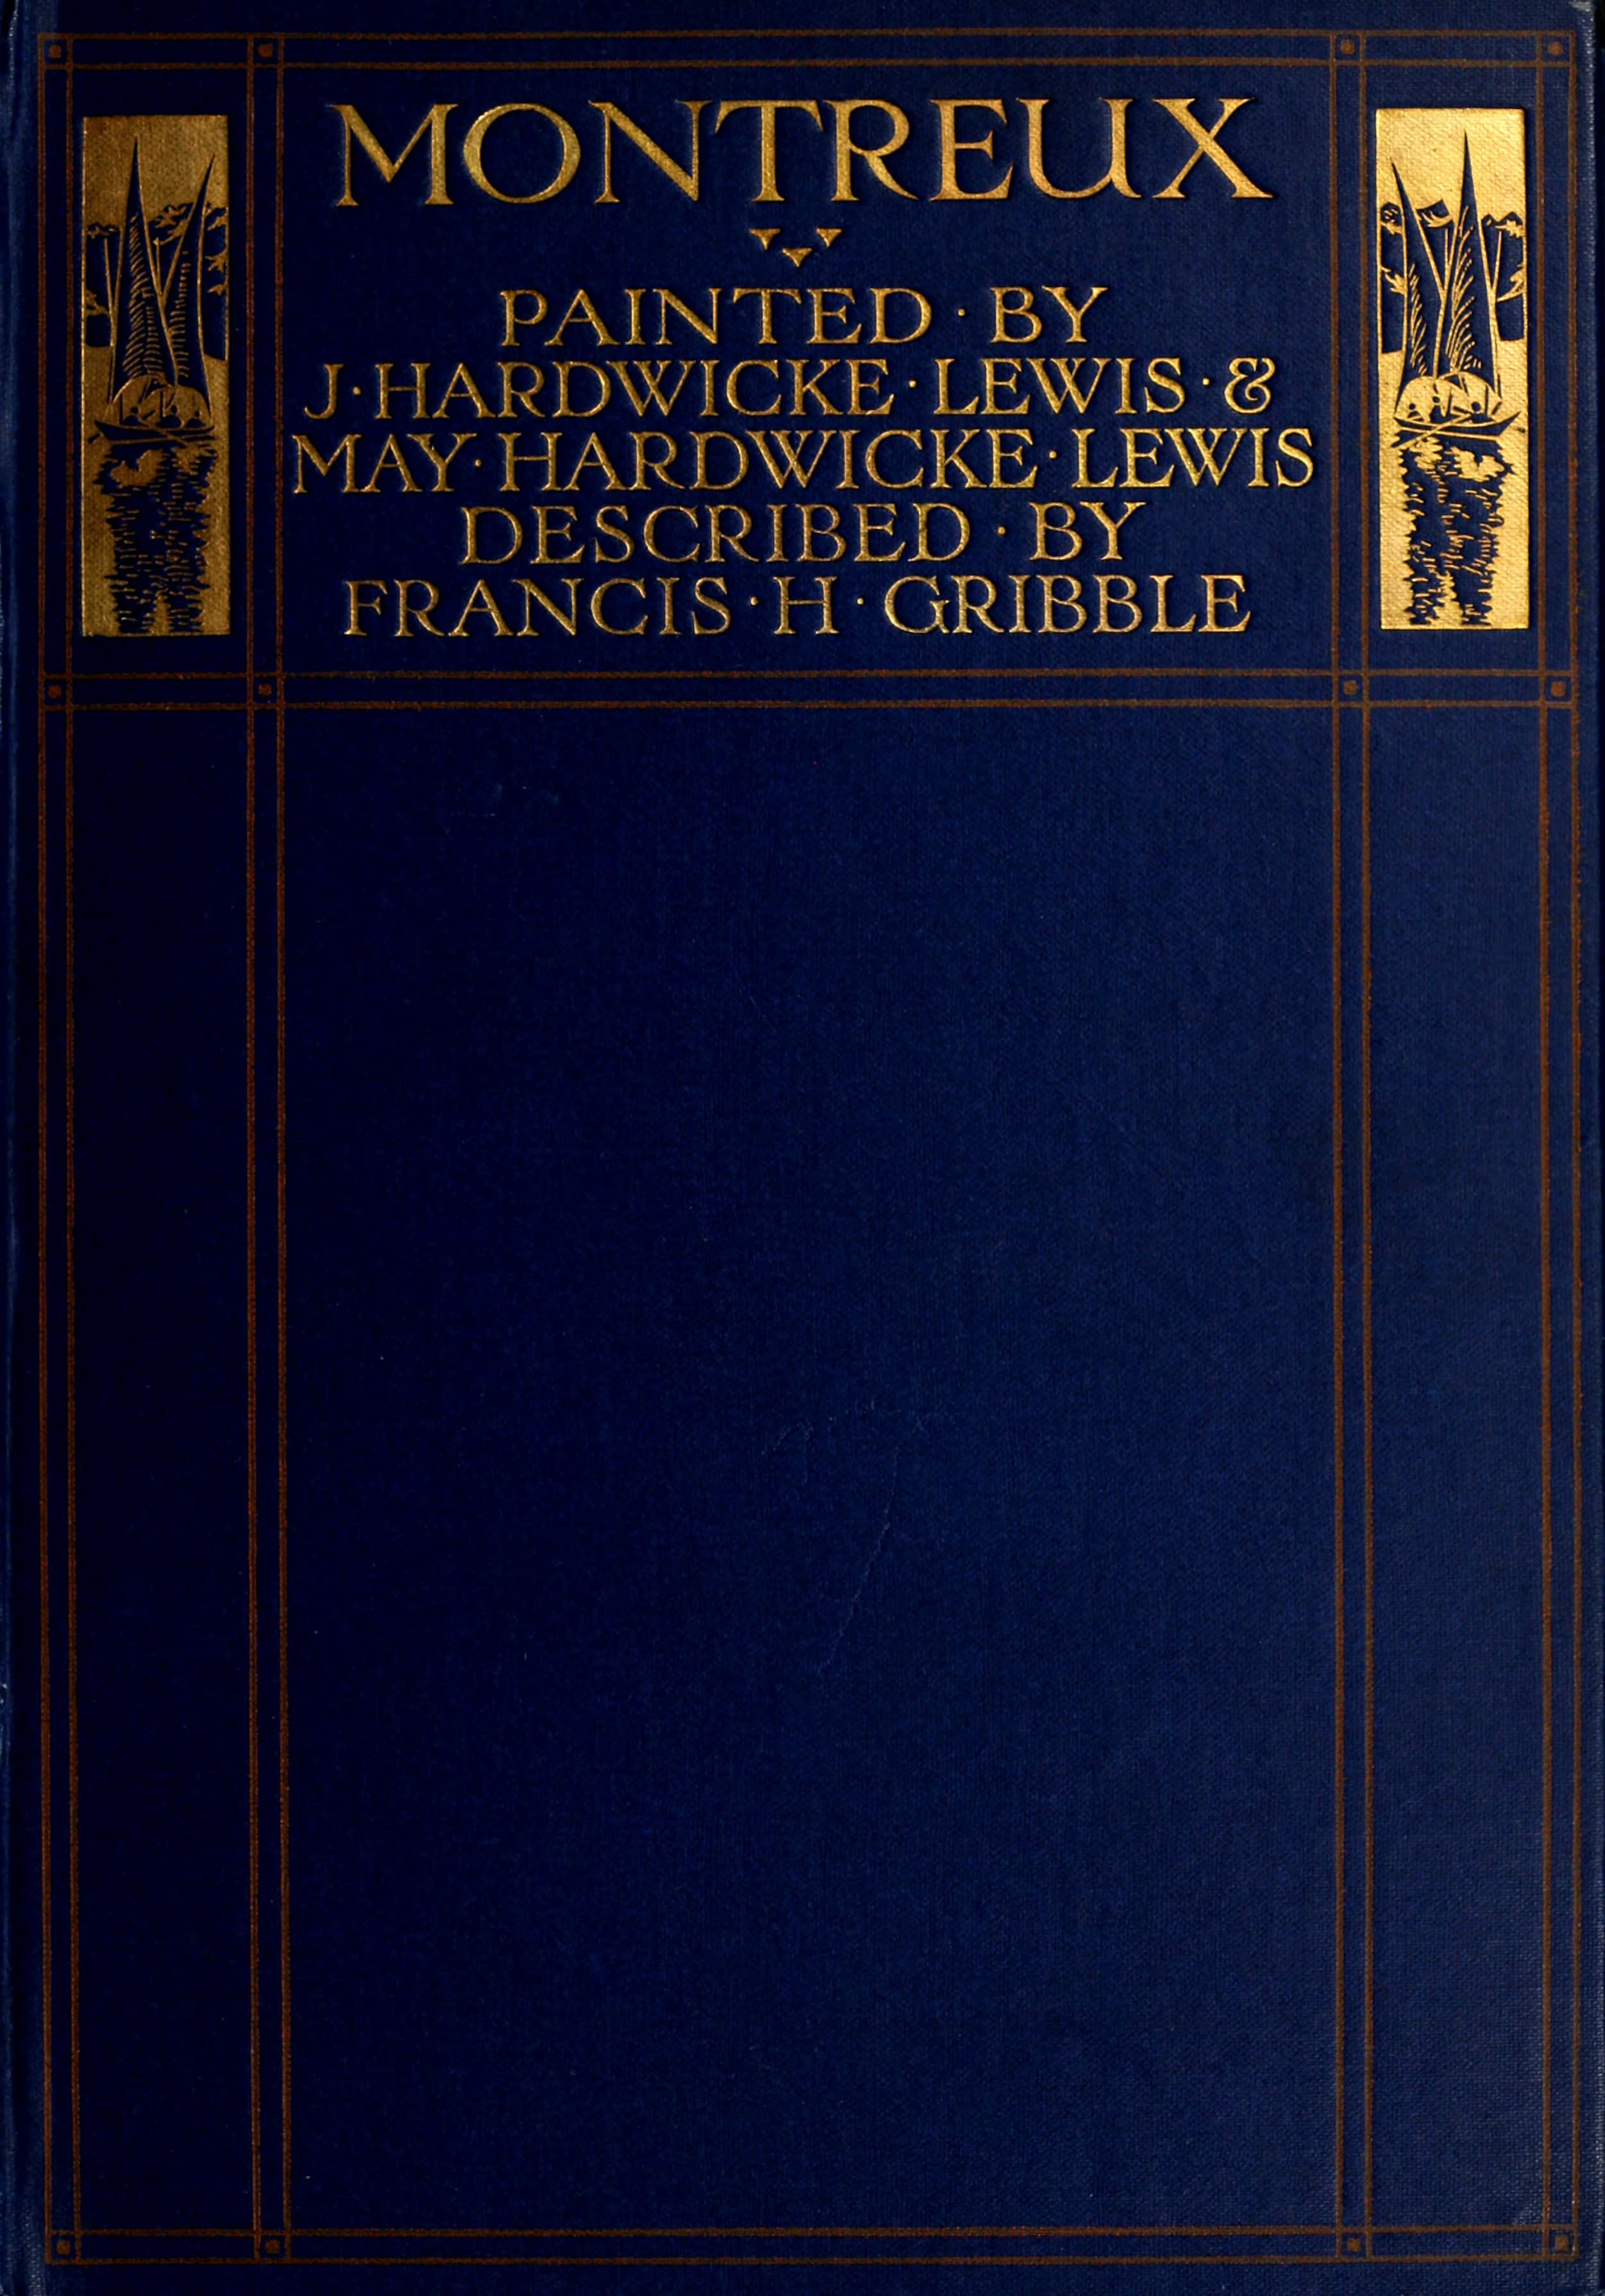 Montreux, Painted and Described - Front Cover (1908)